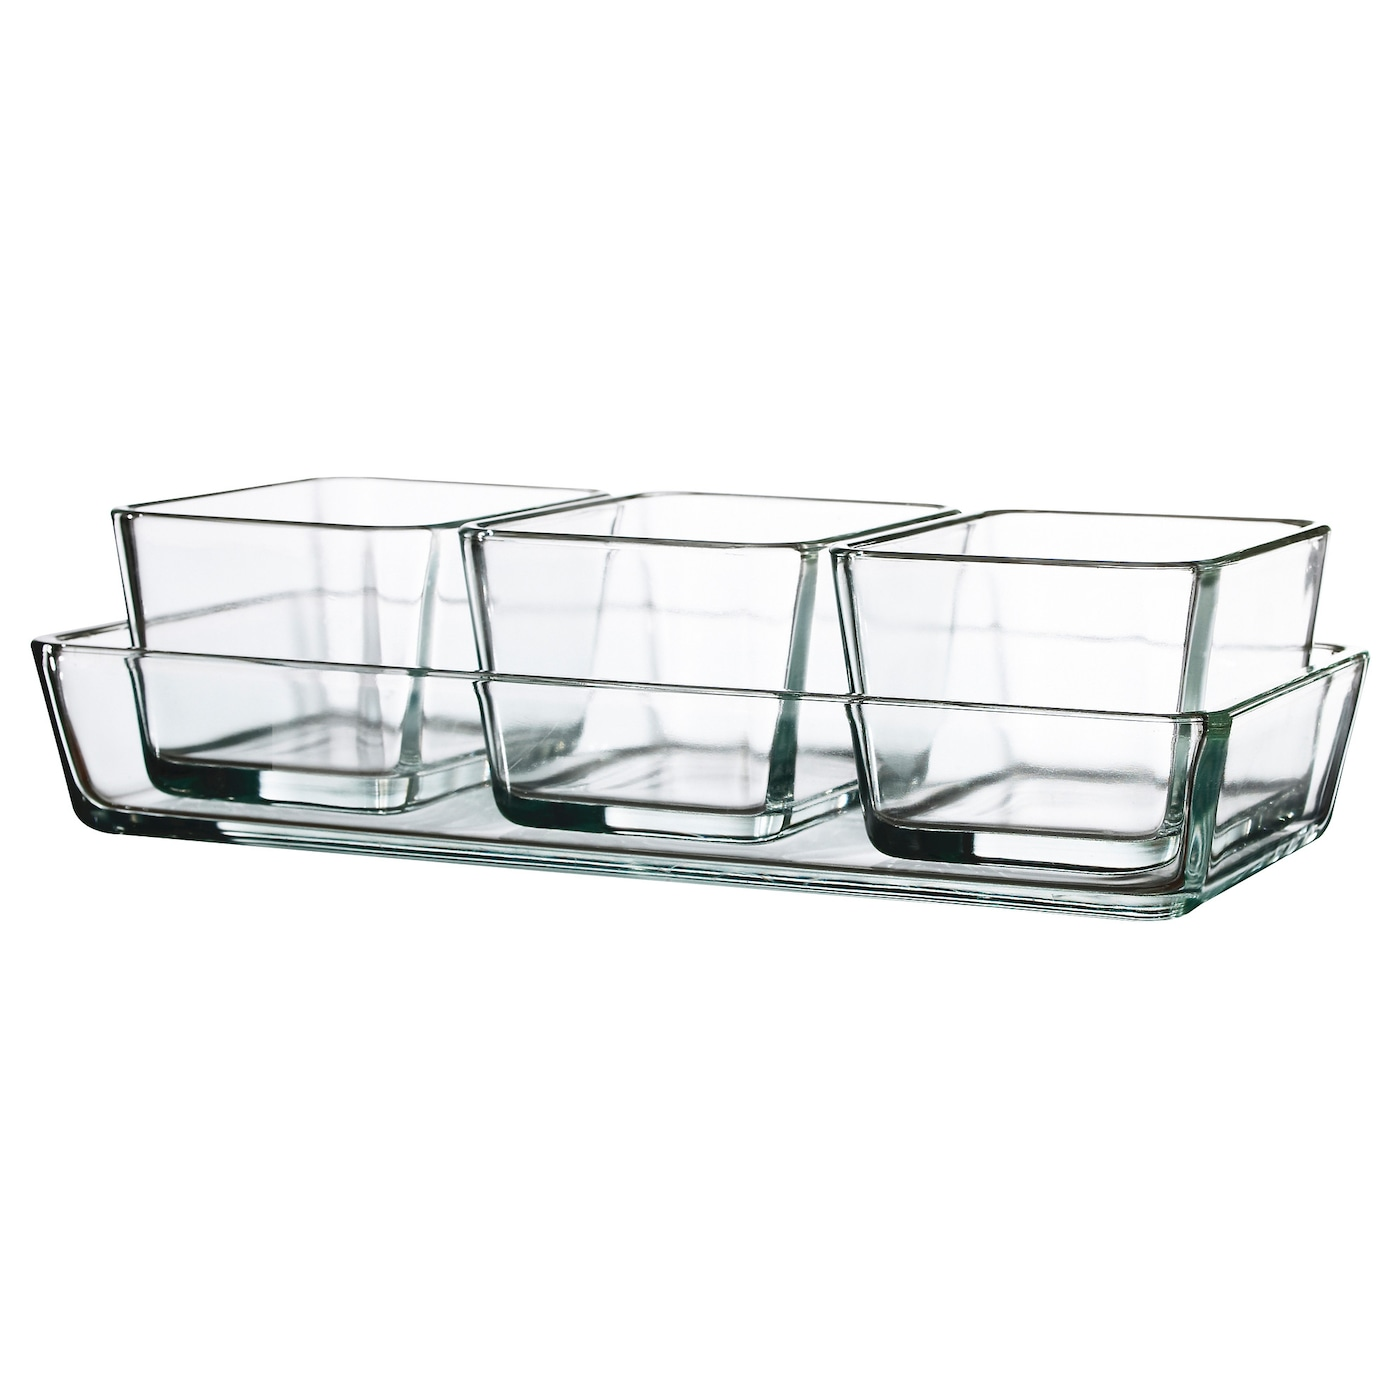 mixtur ramequin plat four lot de 4 verre transparent ikea. Black Bedroom Furniture Sets. Home Design Ideas